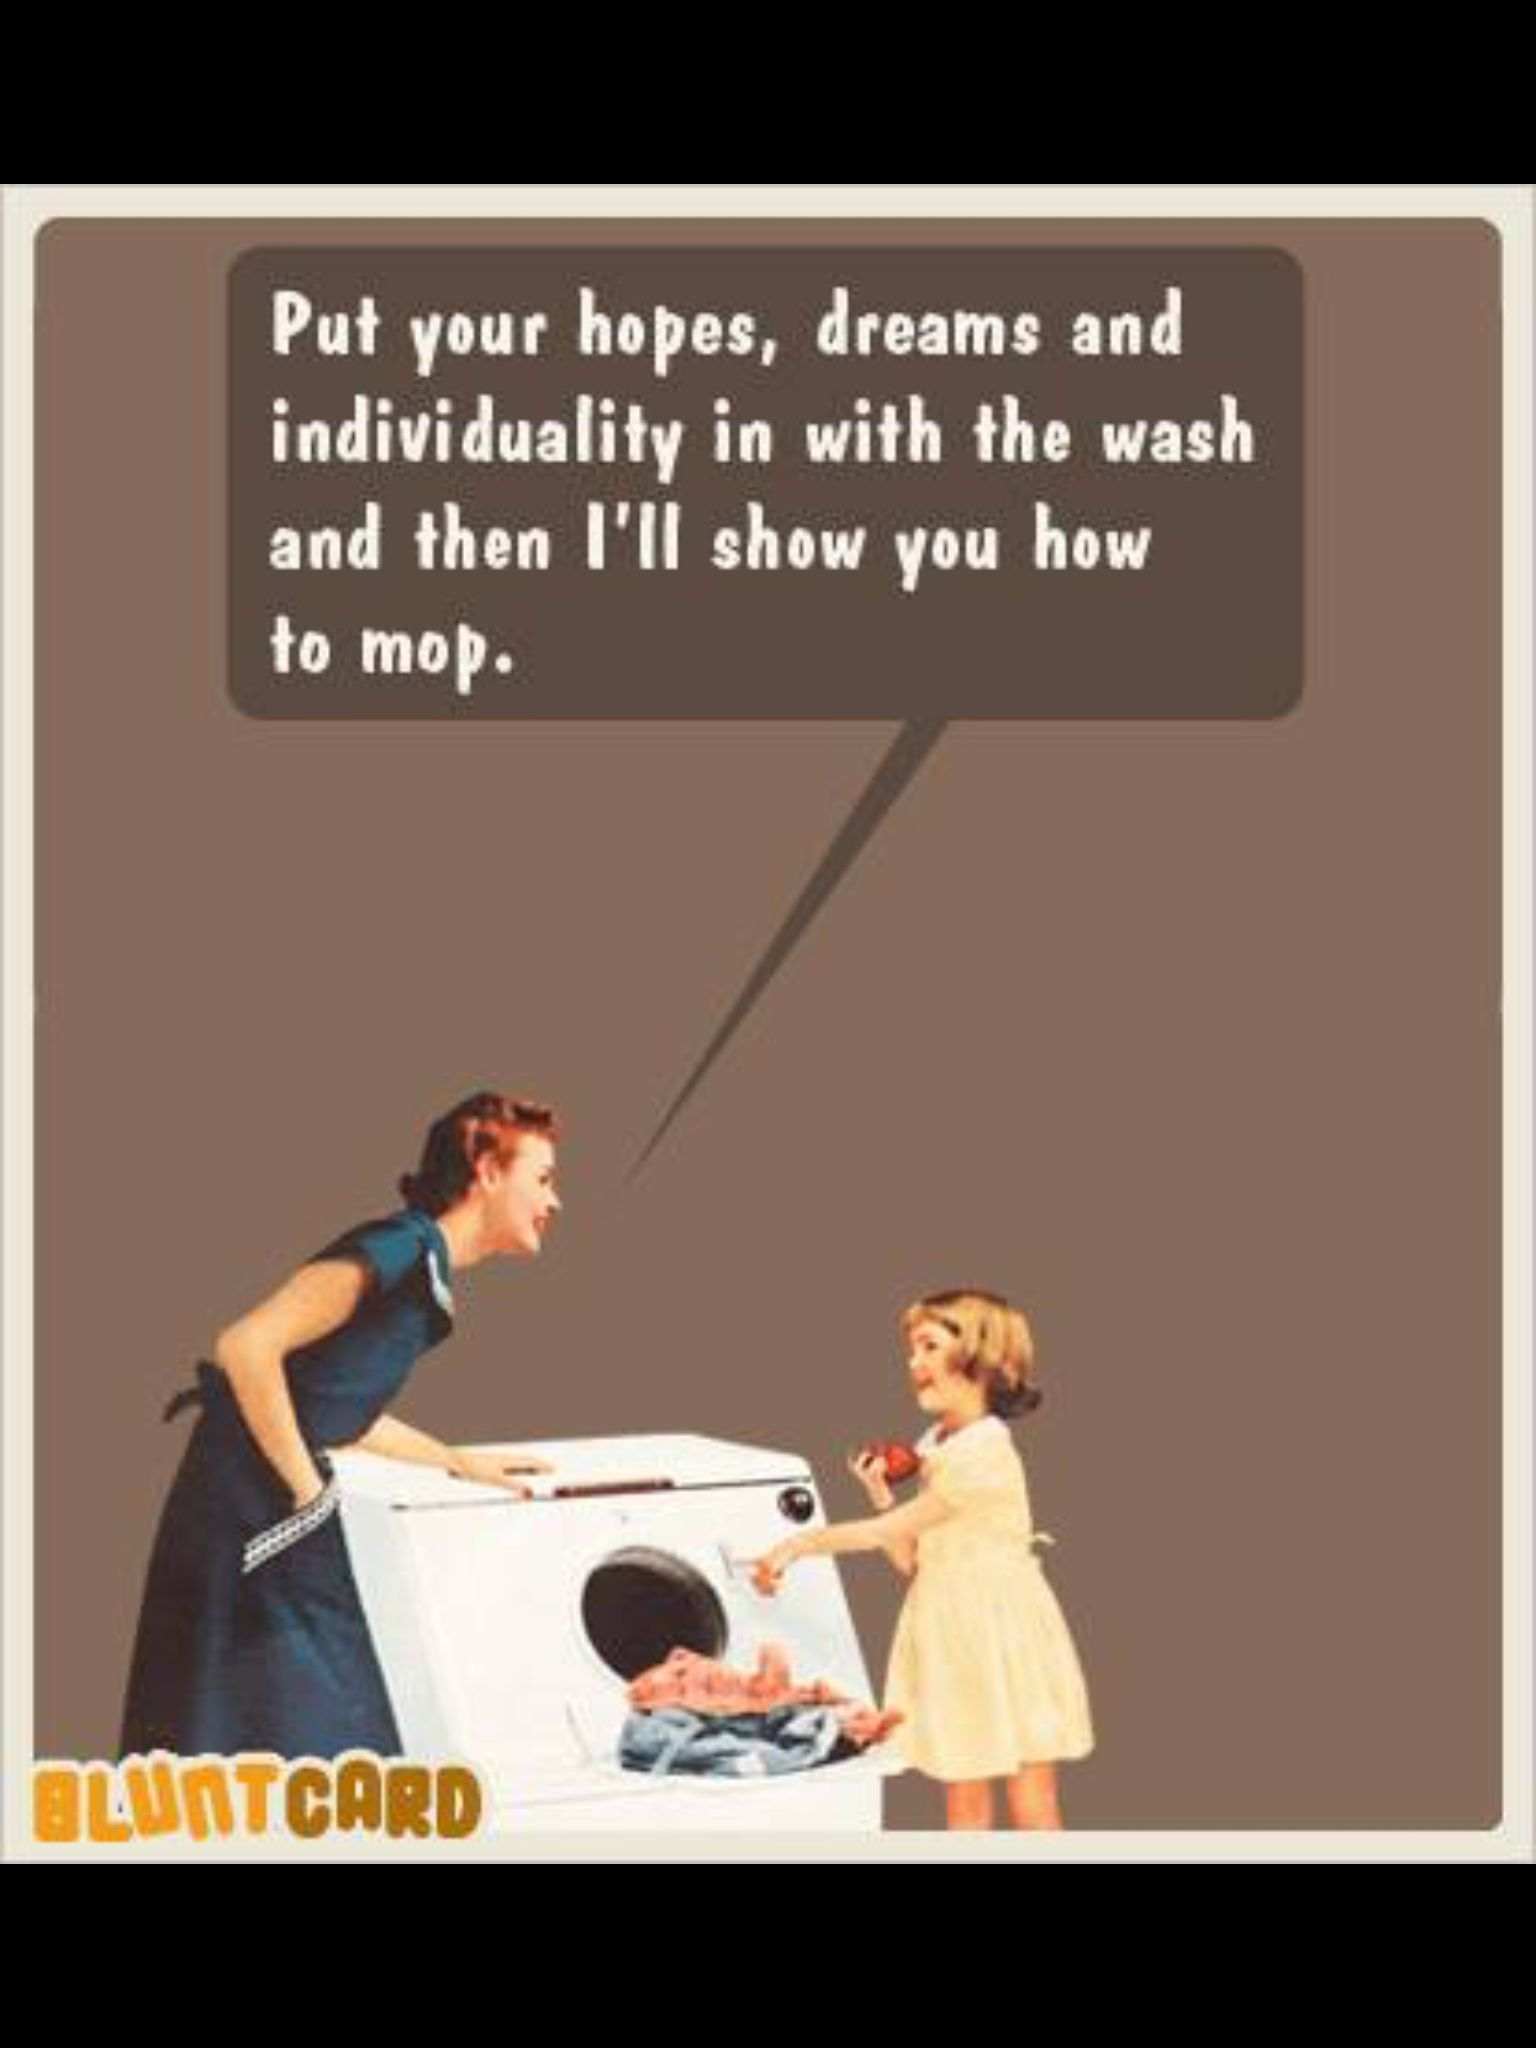 More Free Funny Ecards About Birthday Cakes, Friendship, Work And